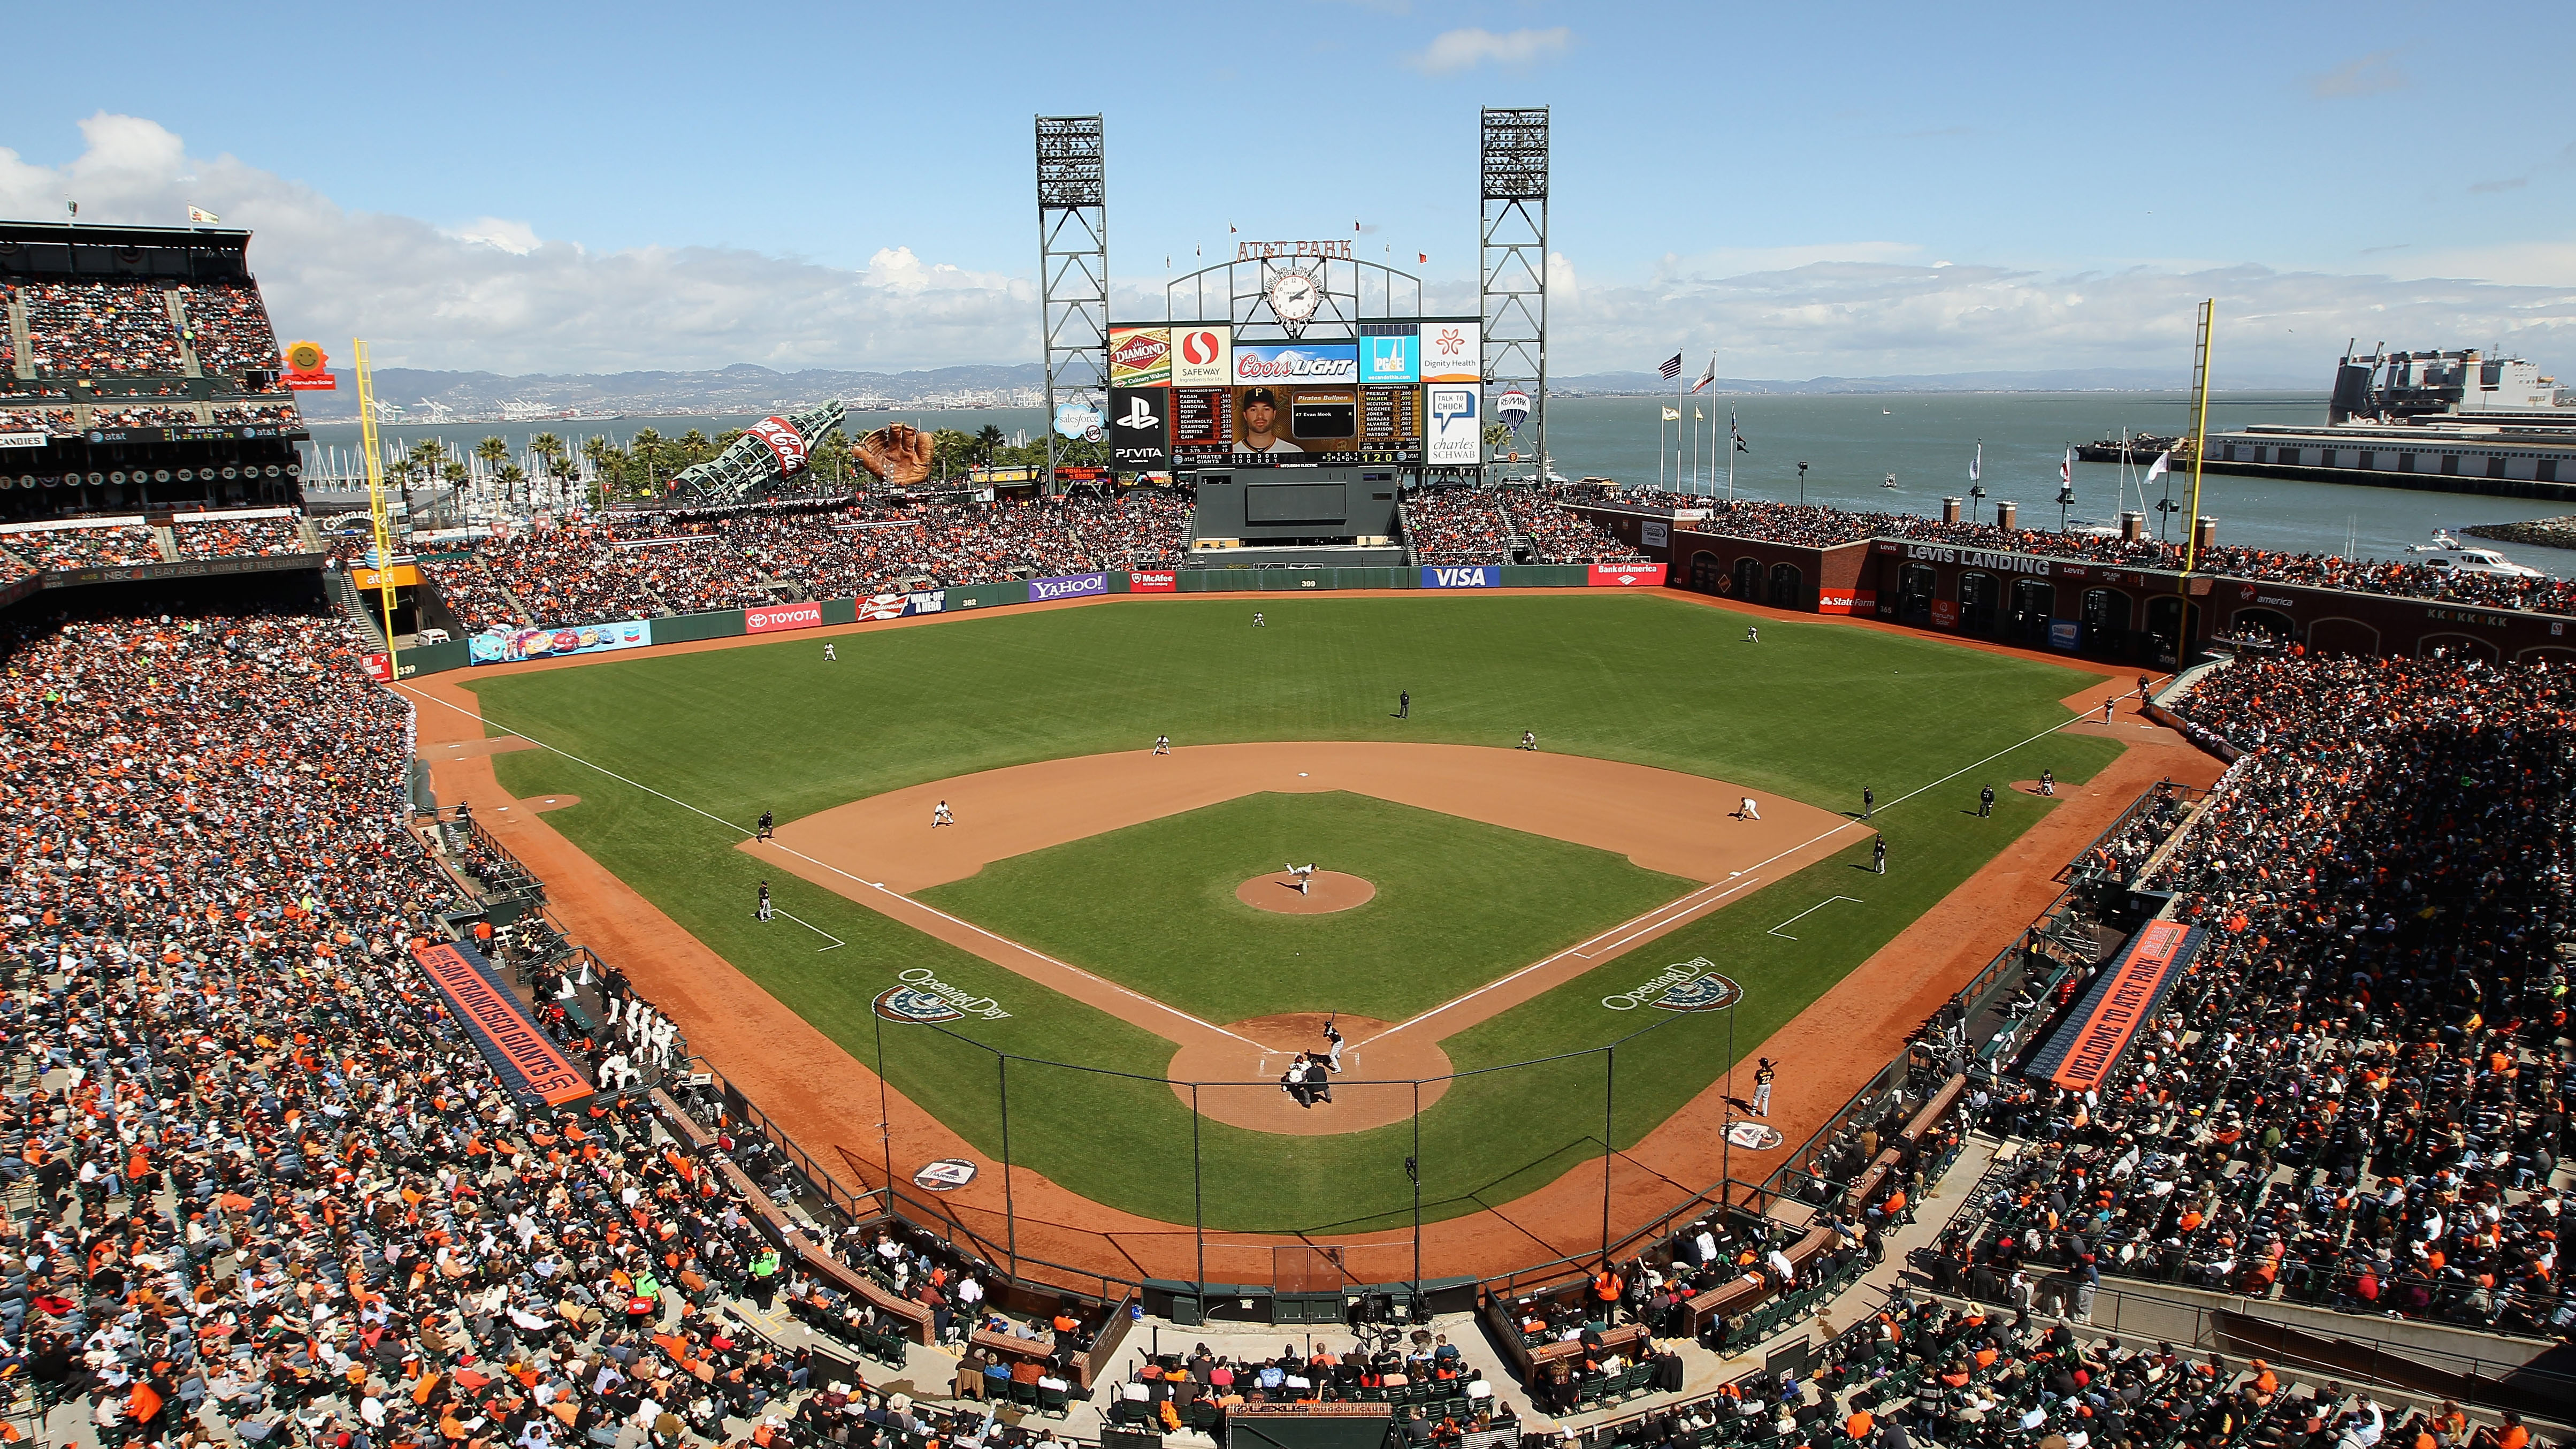 San Francisco Giants consider ban on insensitive attire